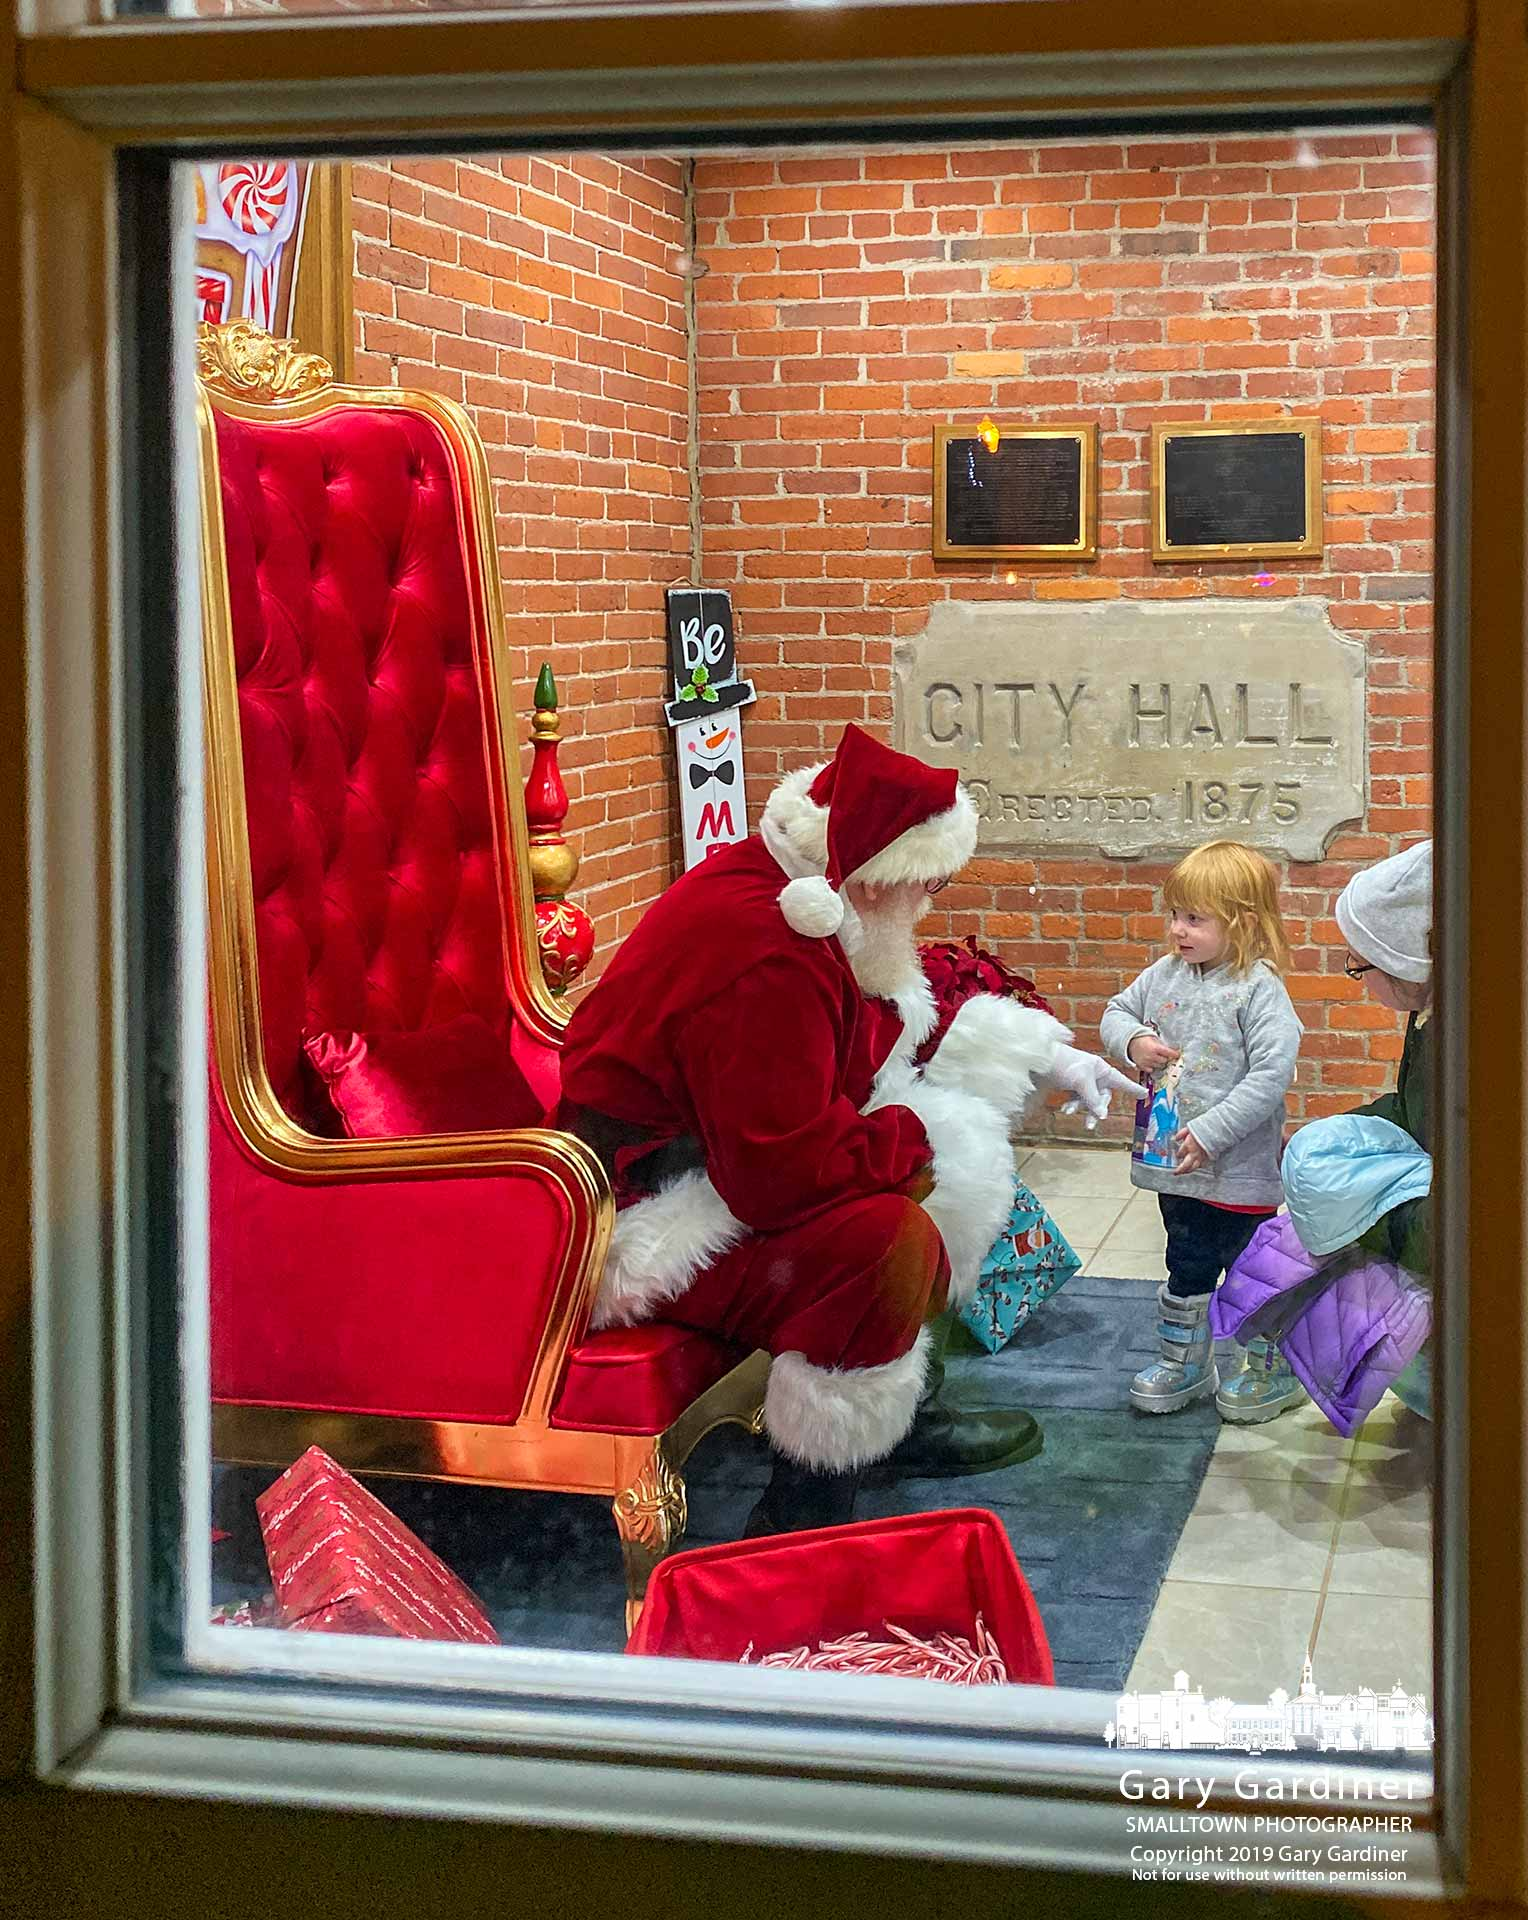 Santa Claus talks with a slightly reluctant young girl as her mother helps take relieve her anxiety about the greeting after waiting in line to see Santa during the Christmas tree lighting ceremony at city hall. My Final Photo for Dec. 6, 2019.